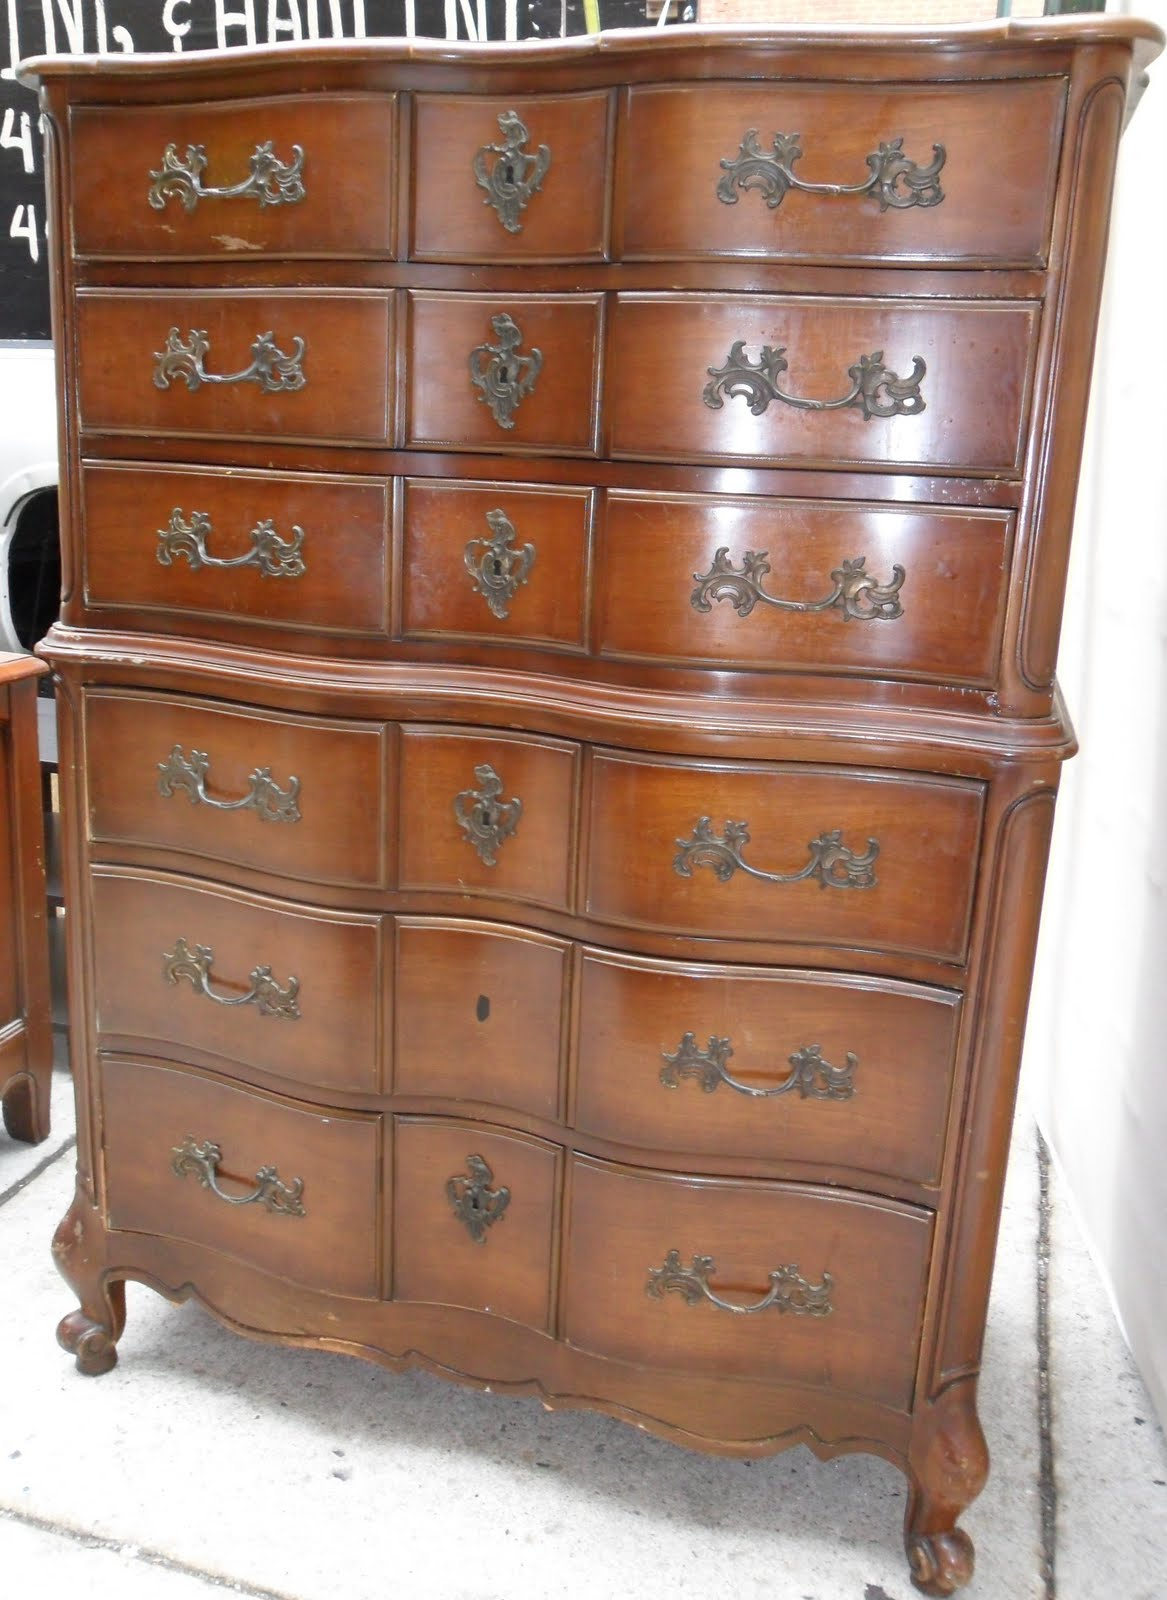 uhuru furniture & collectibles: french provincial walnut bedroom set sold